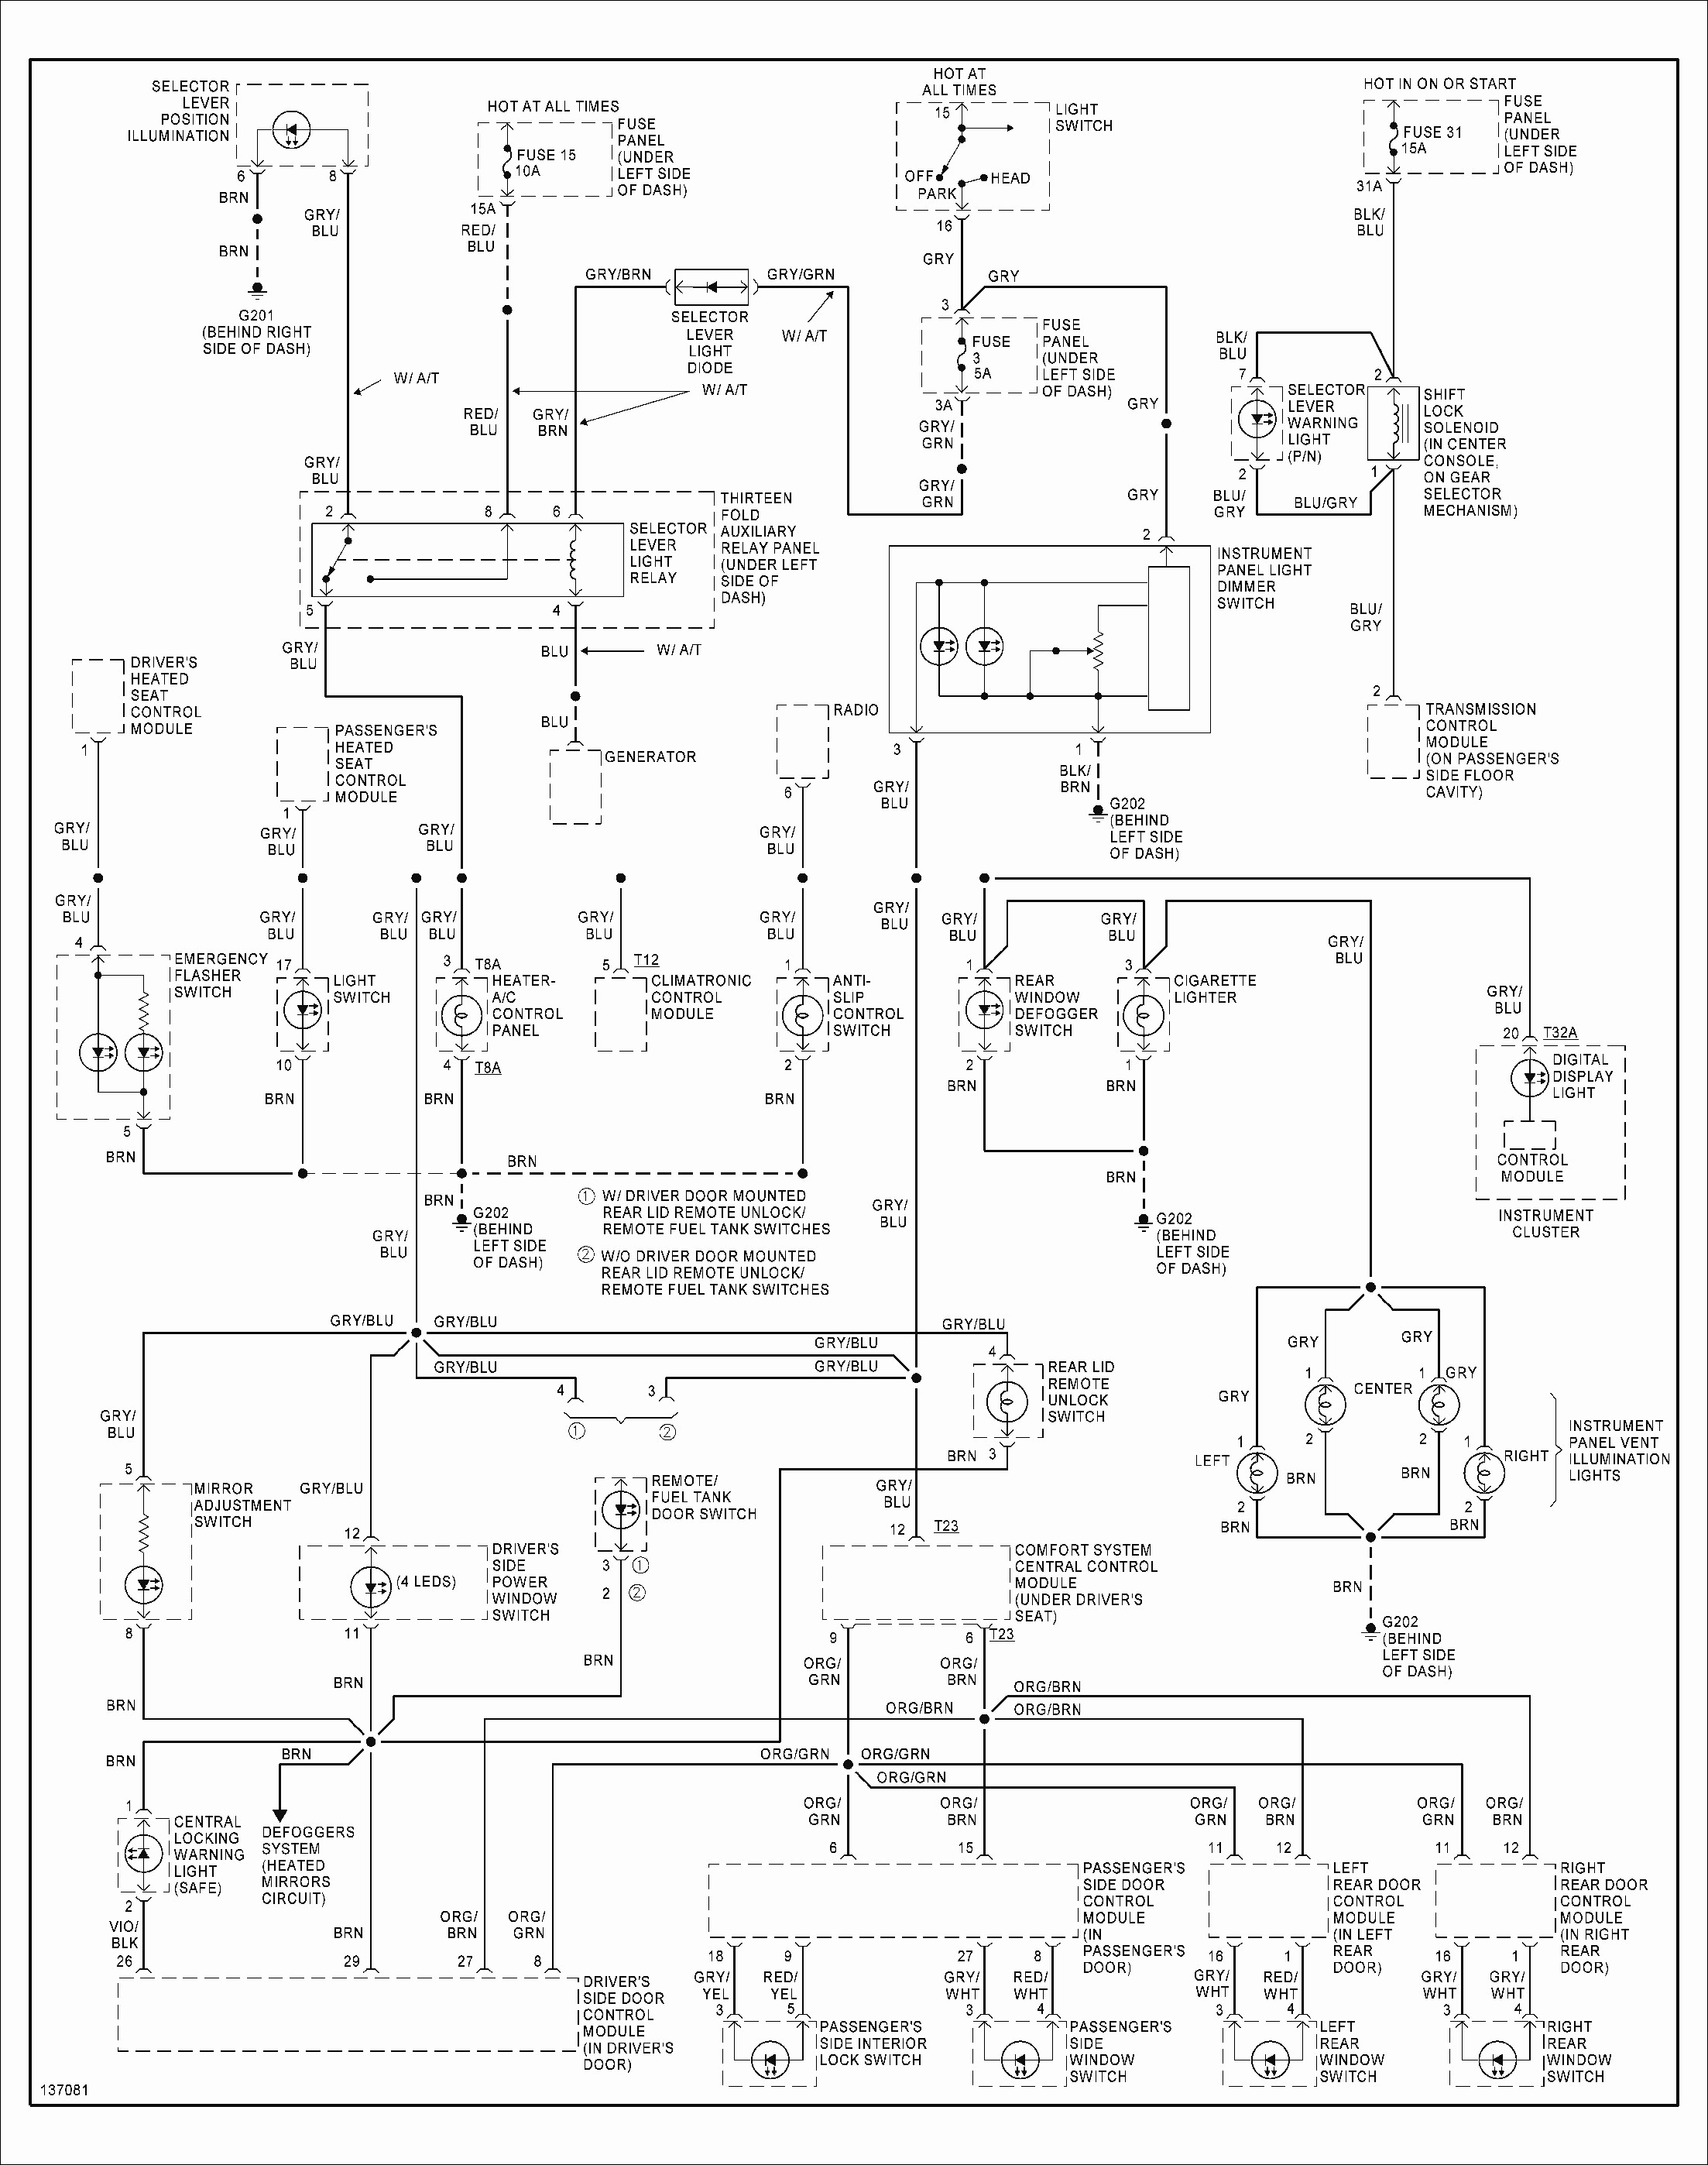 Meter Base Disconnect Wiring Diagram | Wiring Diagram - 200 Amp Meter Base Wiring Diagram